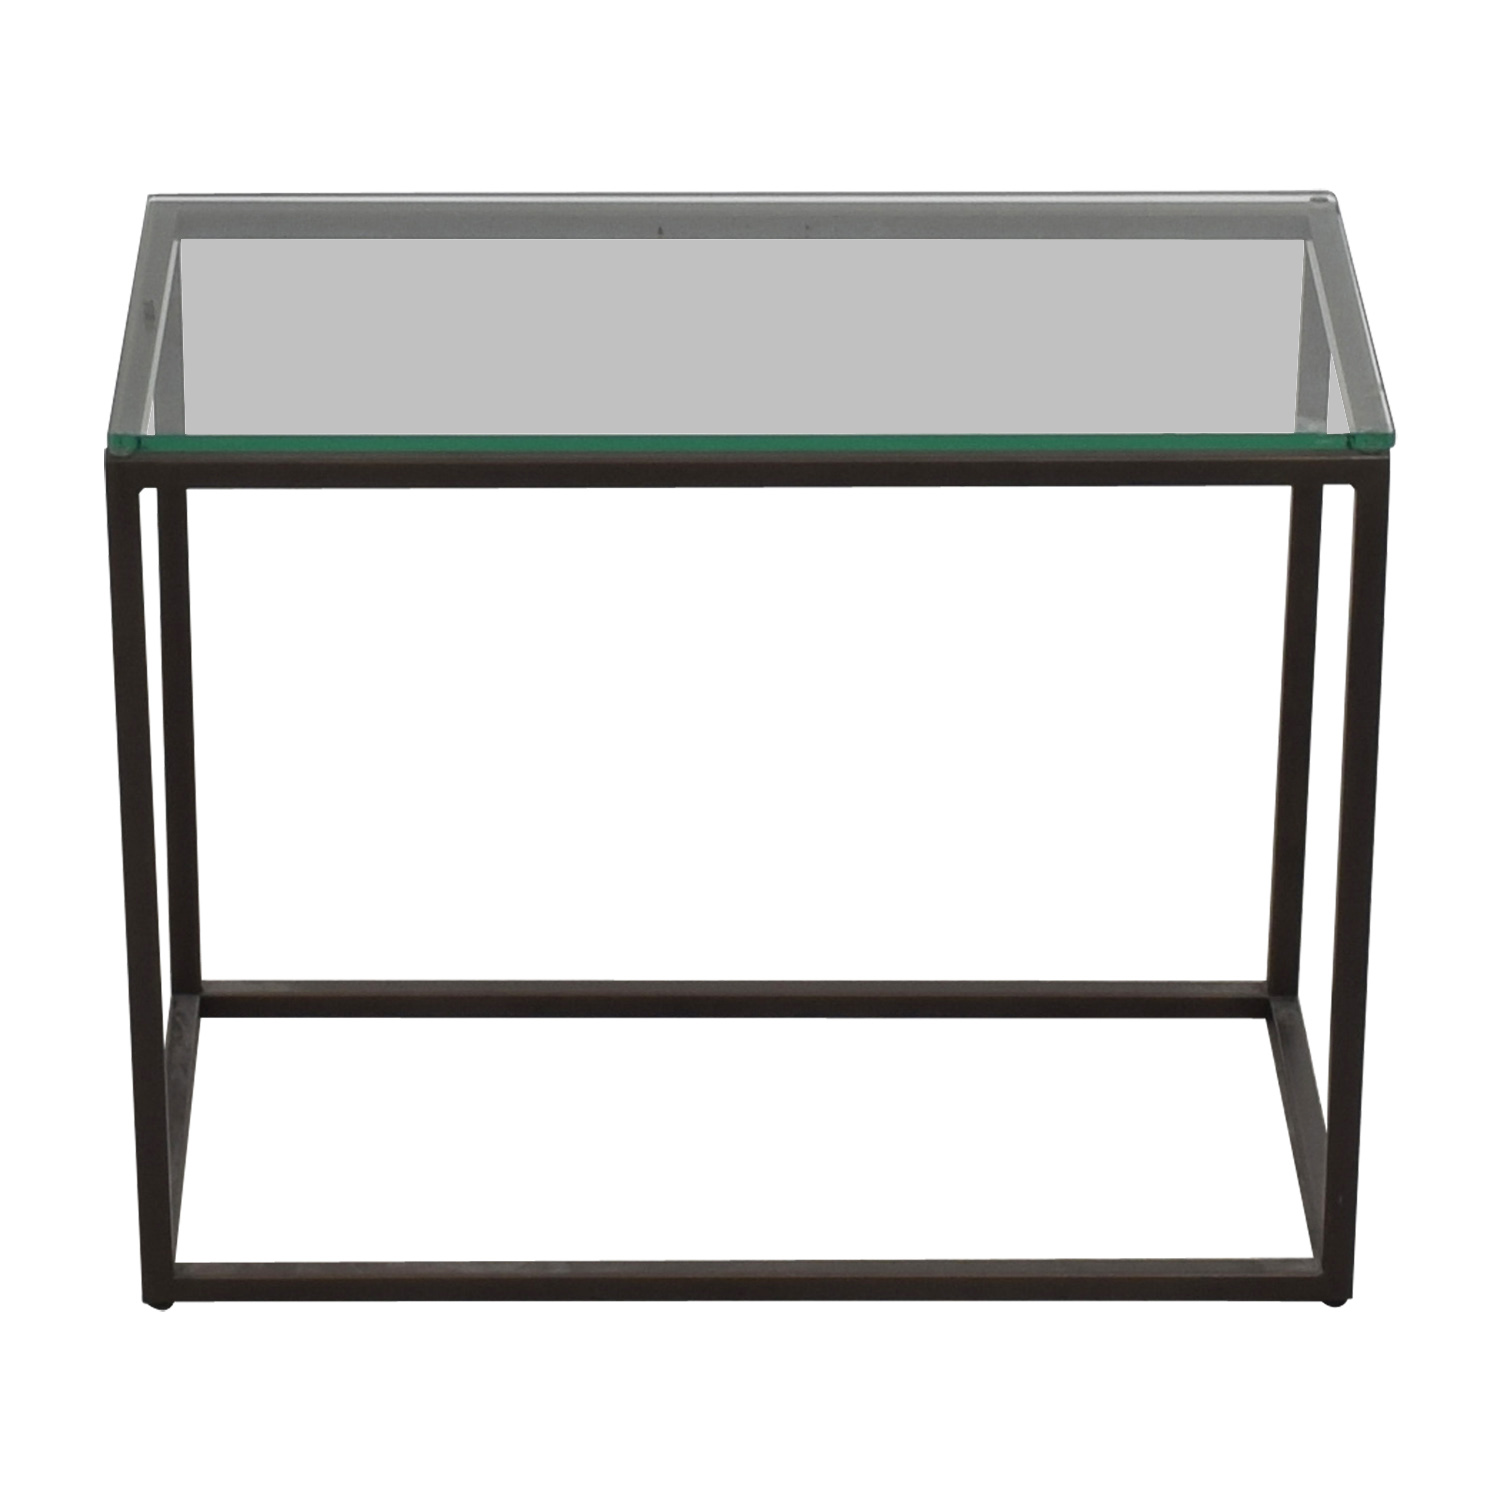 West Elm West Elm Glass Box Frame Side Table price